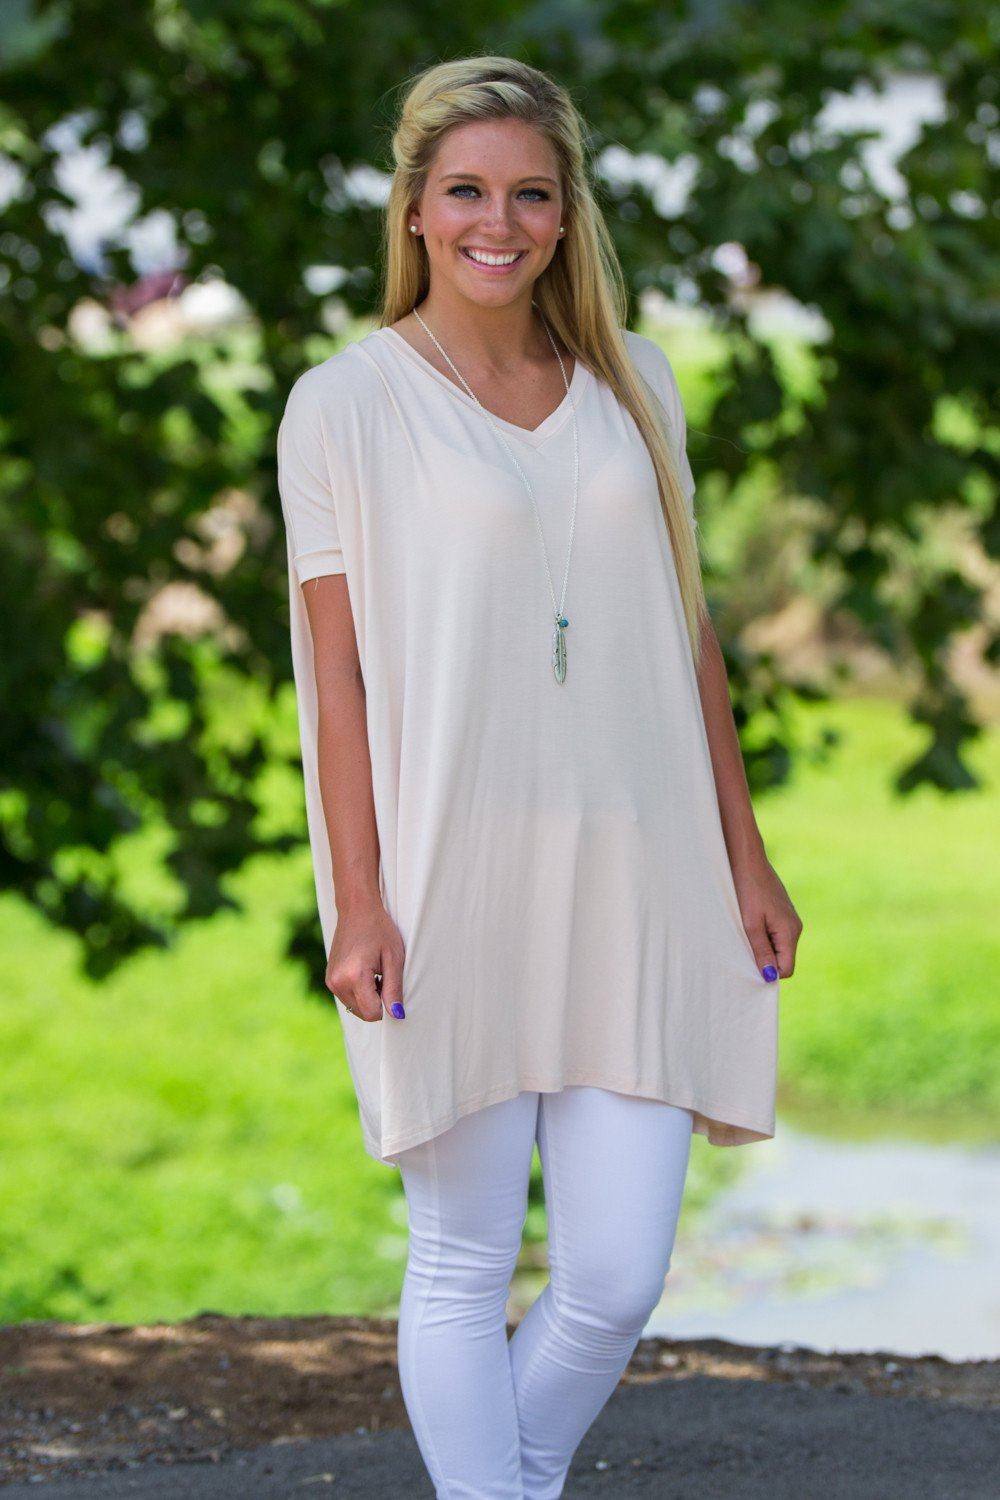 Short Sleeve V-Neck Piko Tunic - Cream - Piko Clothing - 1